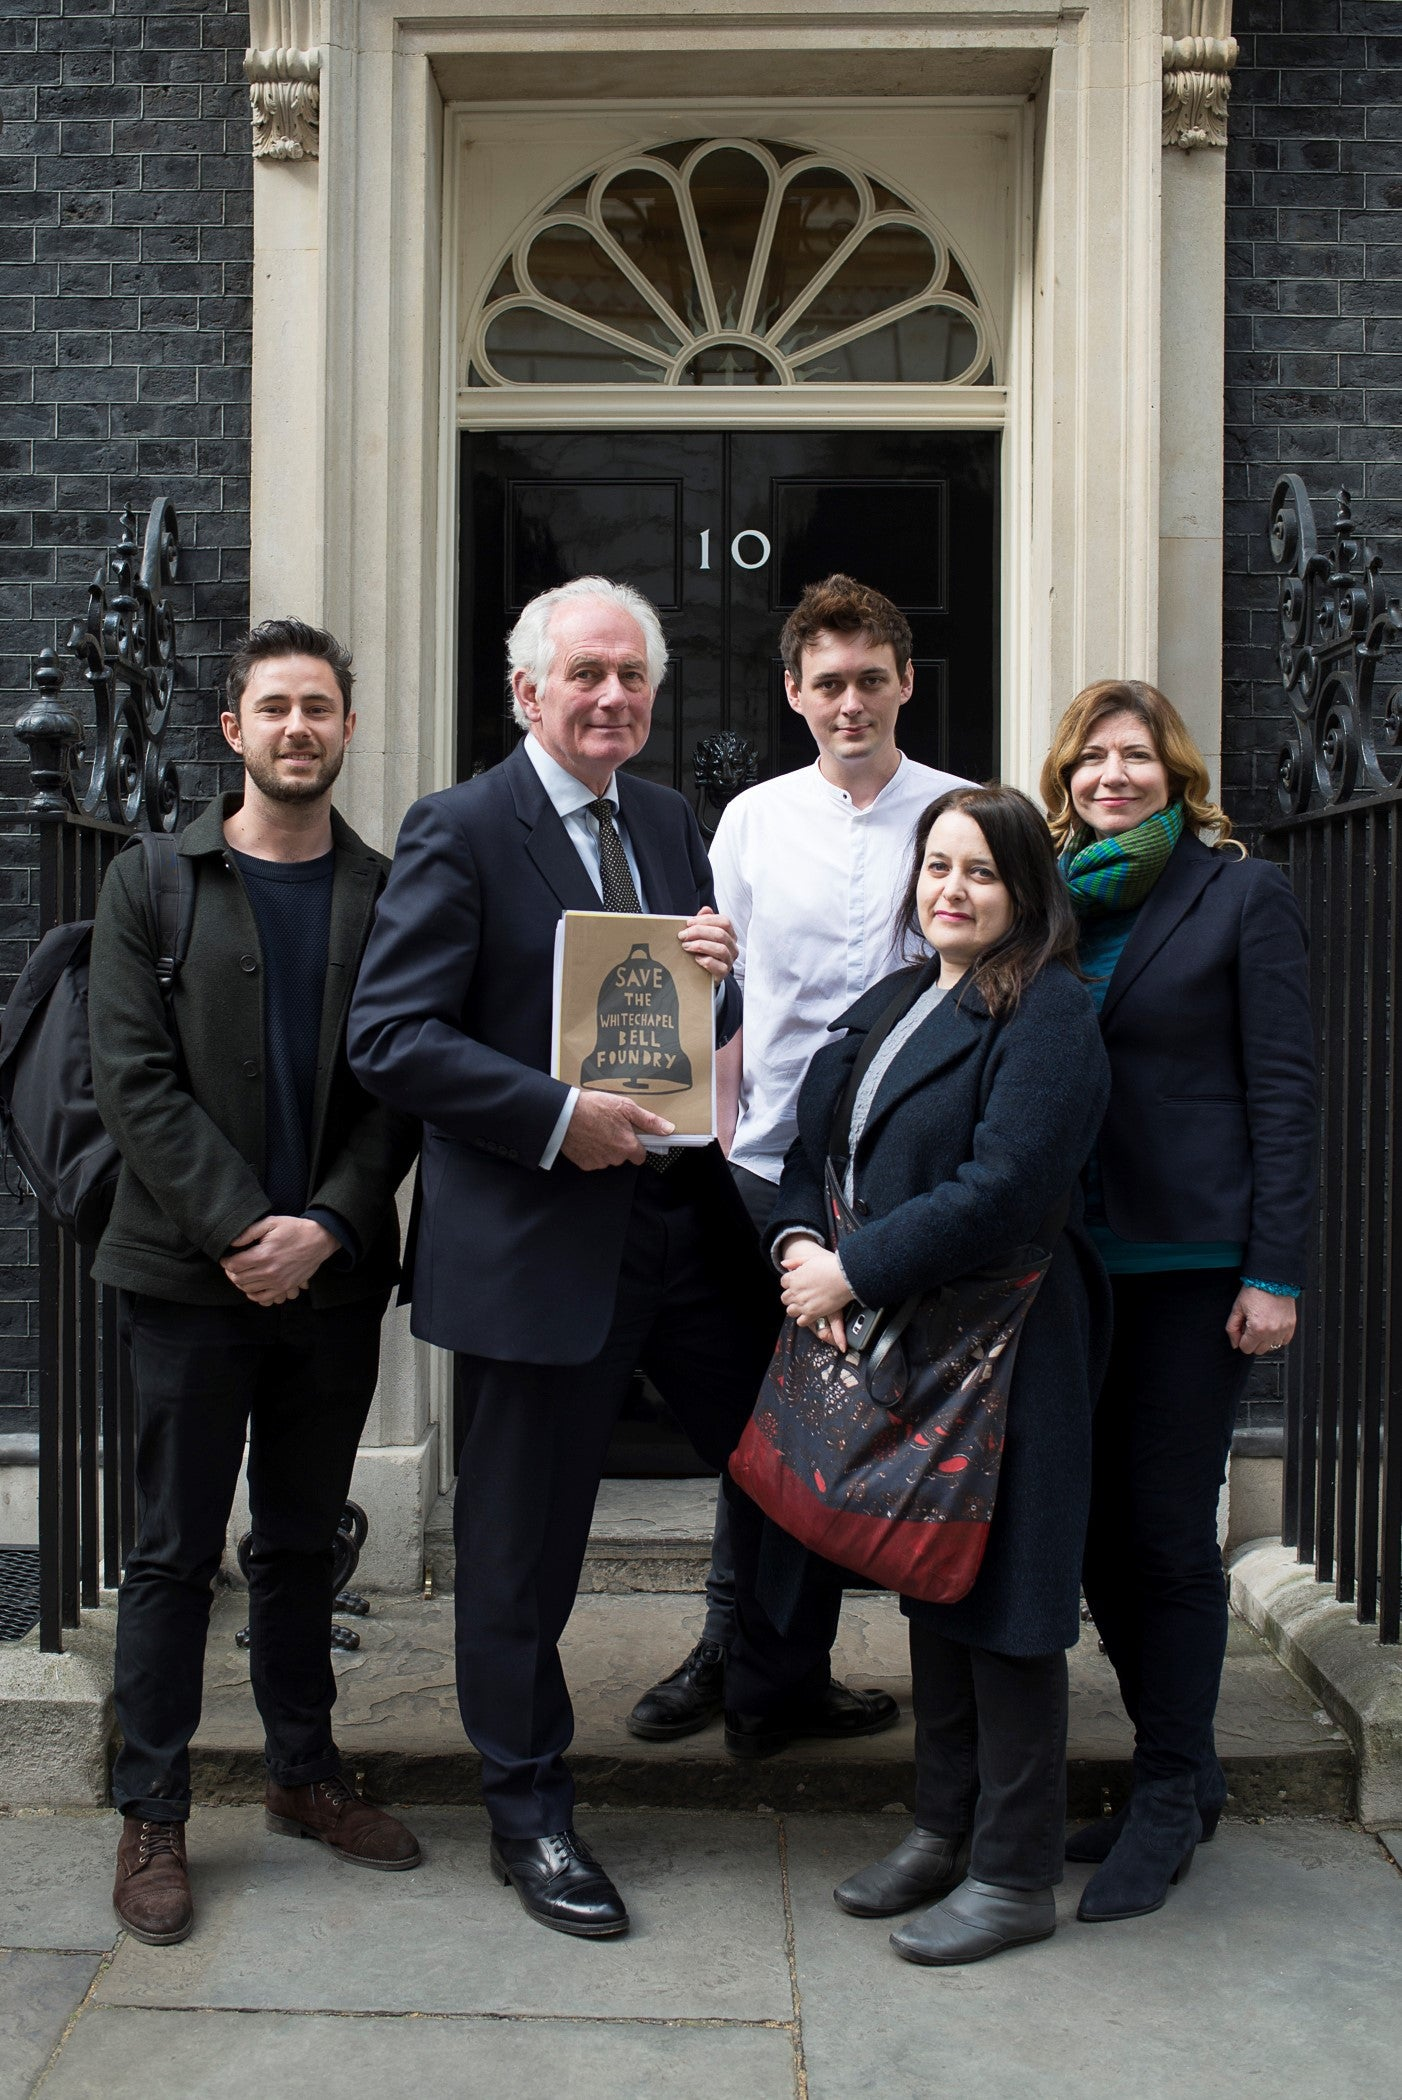 Whitechapel Bell Foundry Petition Submitted to Downing Street